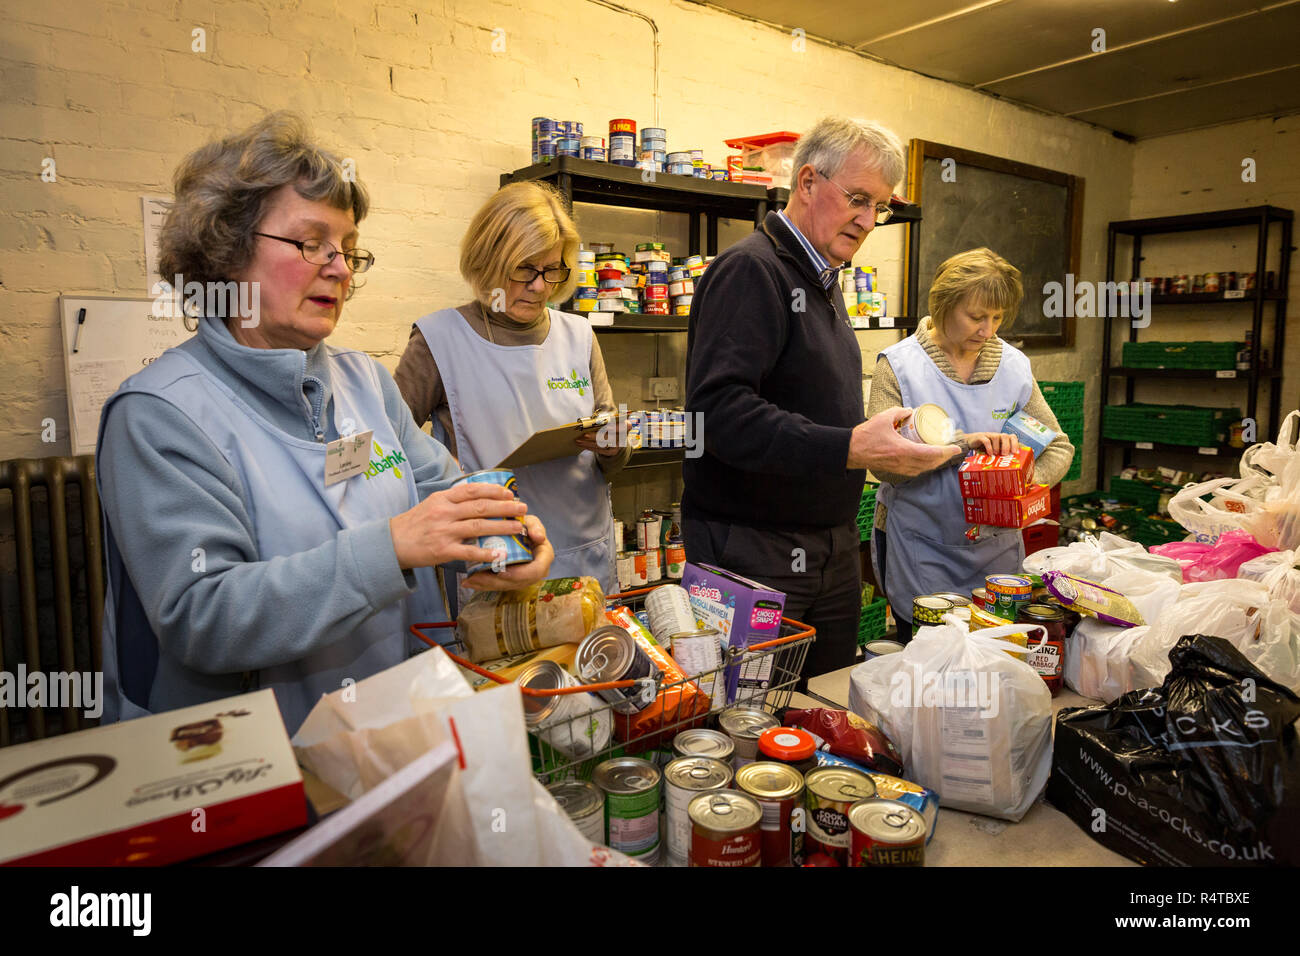 Volunteers sort out newly arrived donations at Arnold Foodbank Daybrook Baptist Church's food store and provide those in need with donated food in Nottingham. Stock Photo